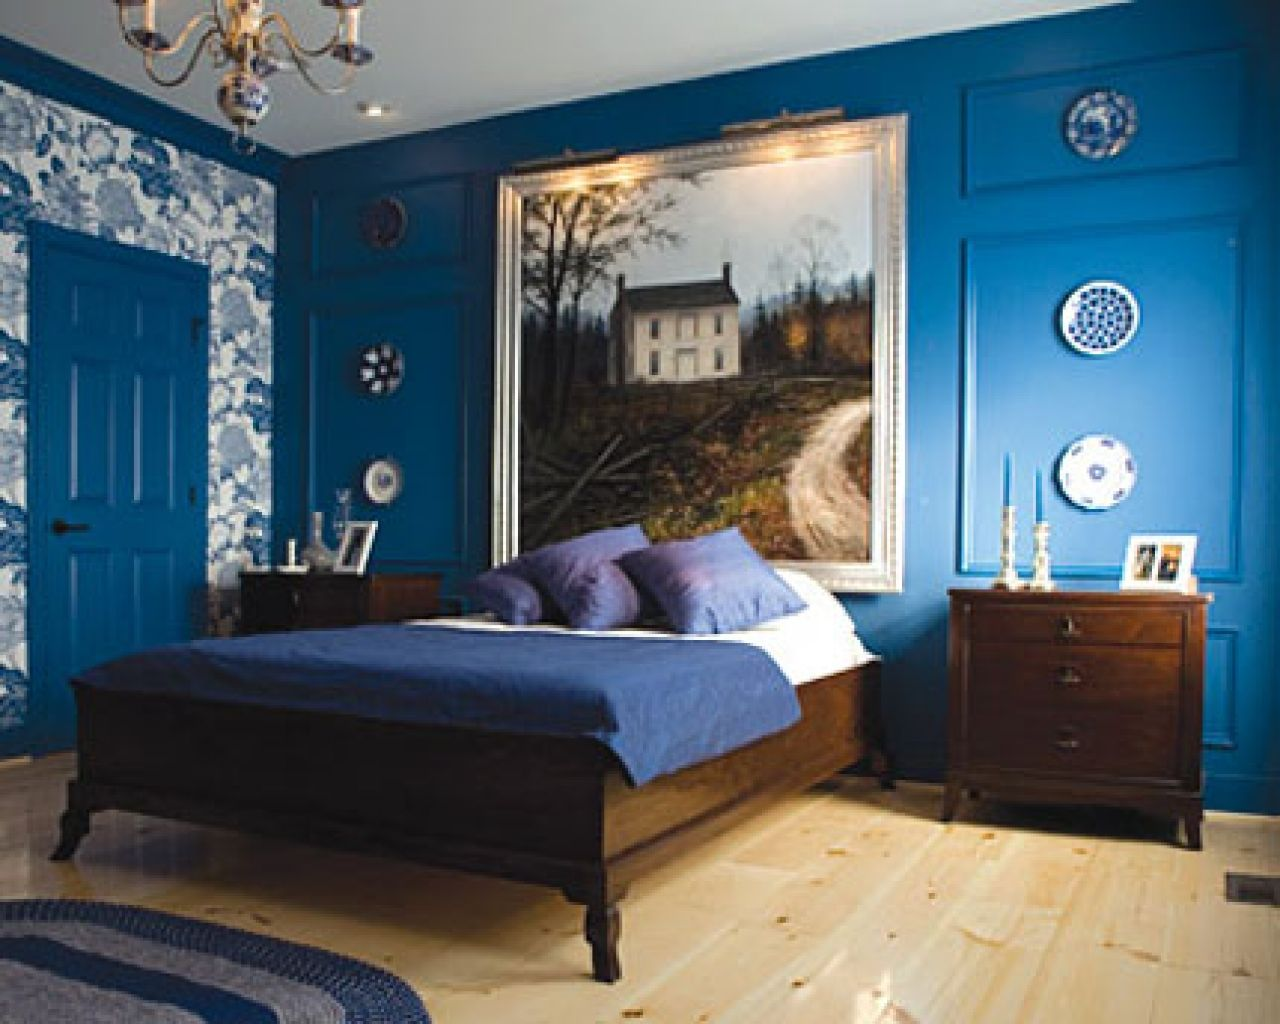 bedroom painting design ideas pretty natural bedroom paint ideas cute blue wall idp interior design - Bedroom Paint Design Ideas